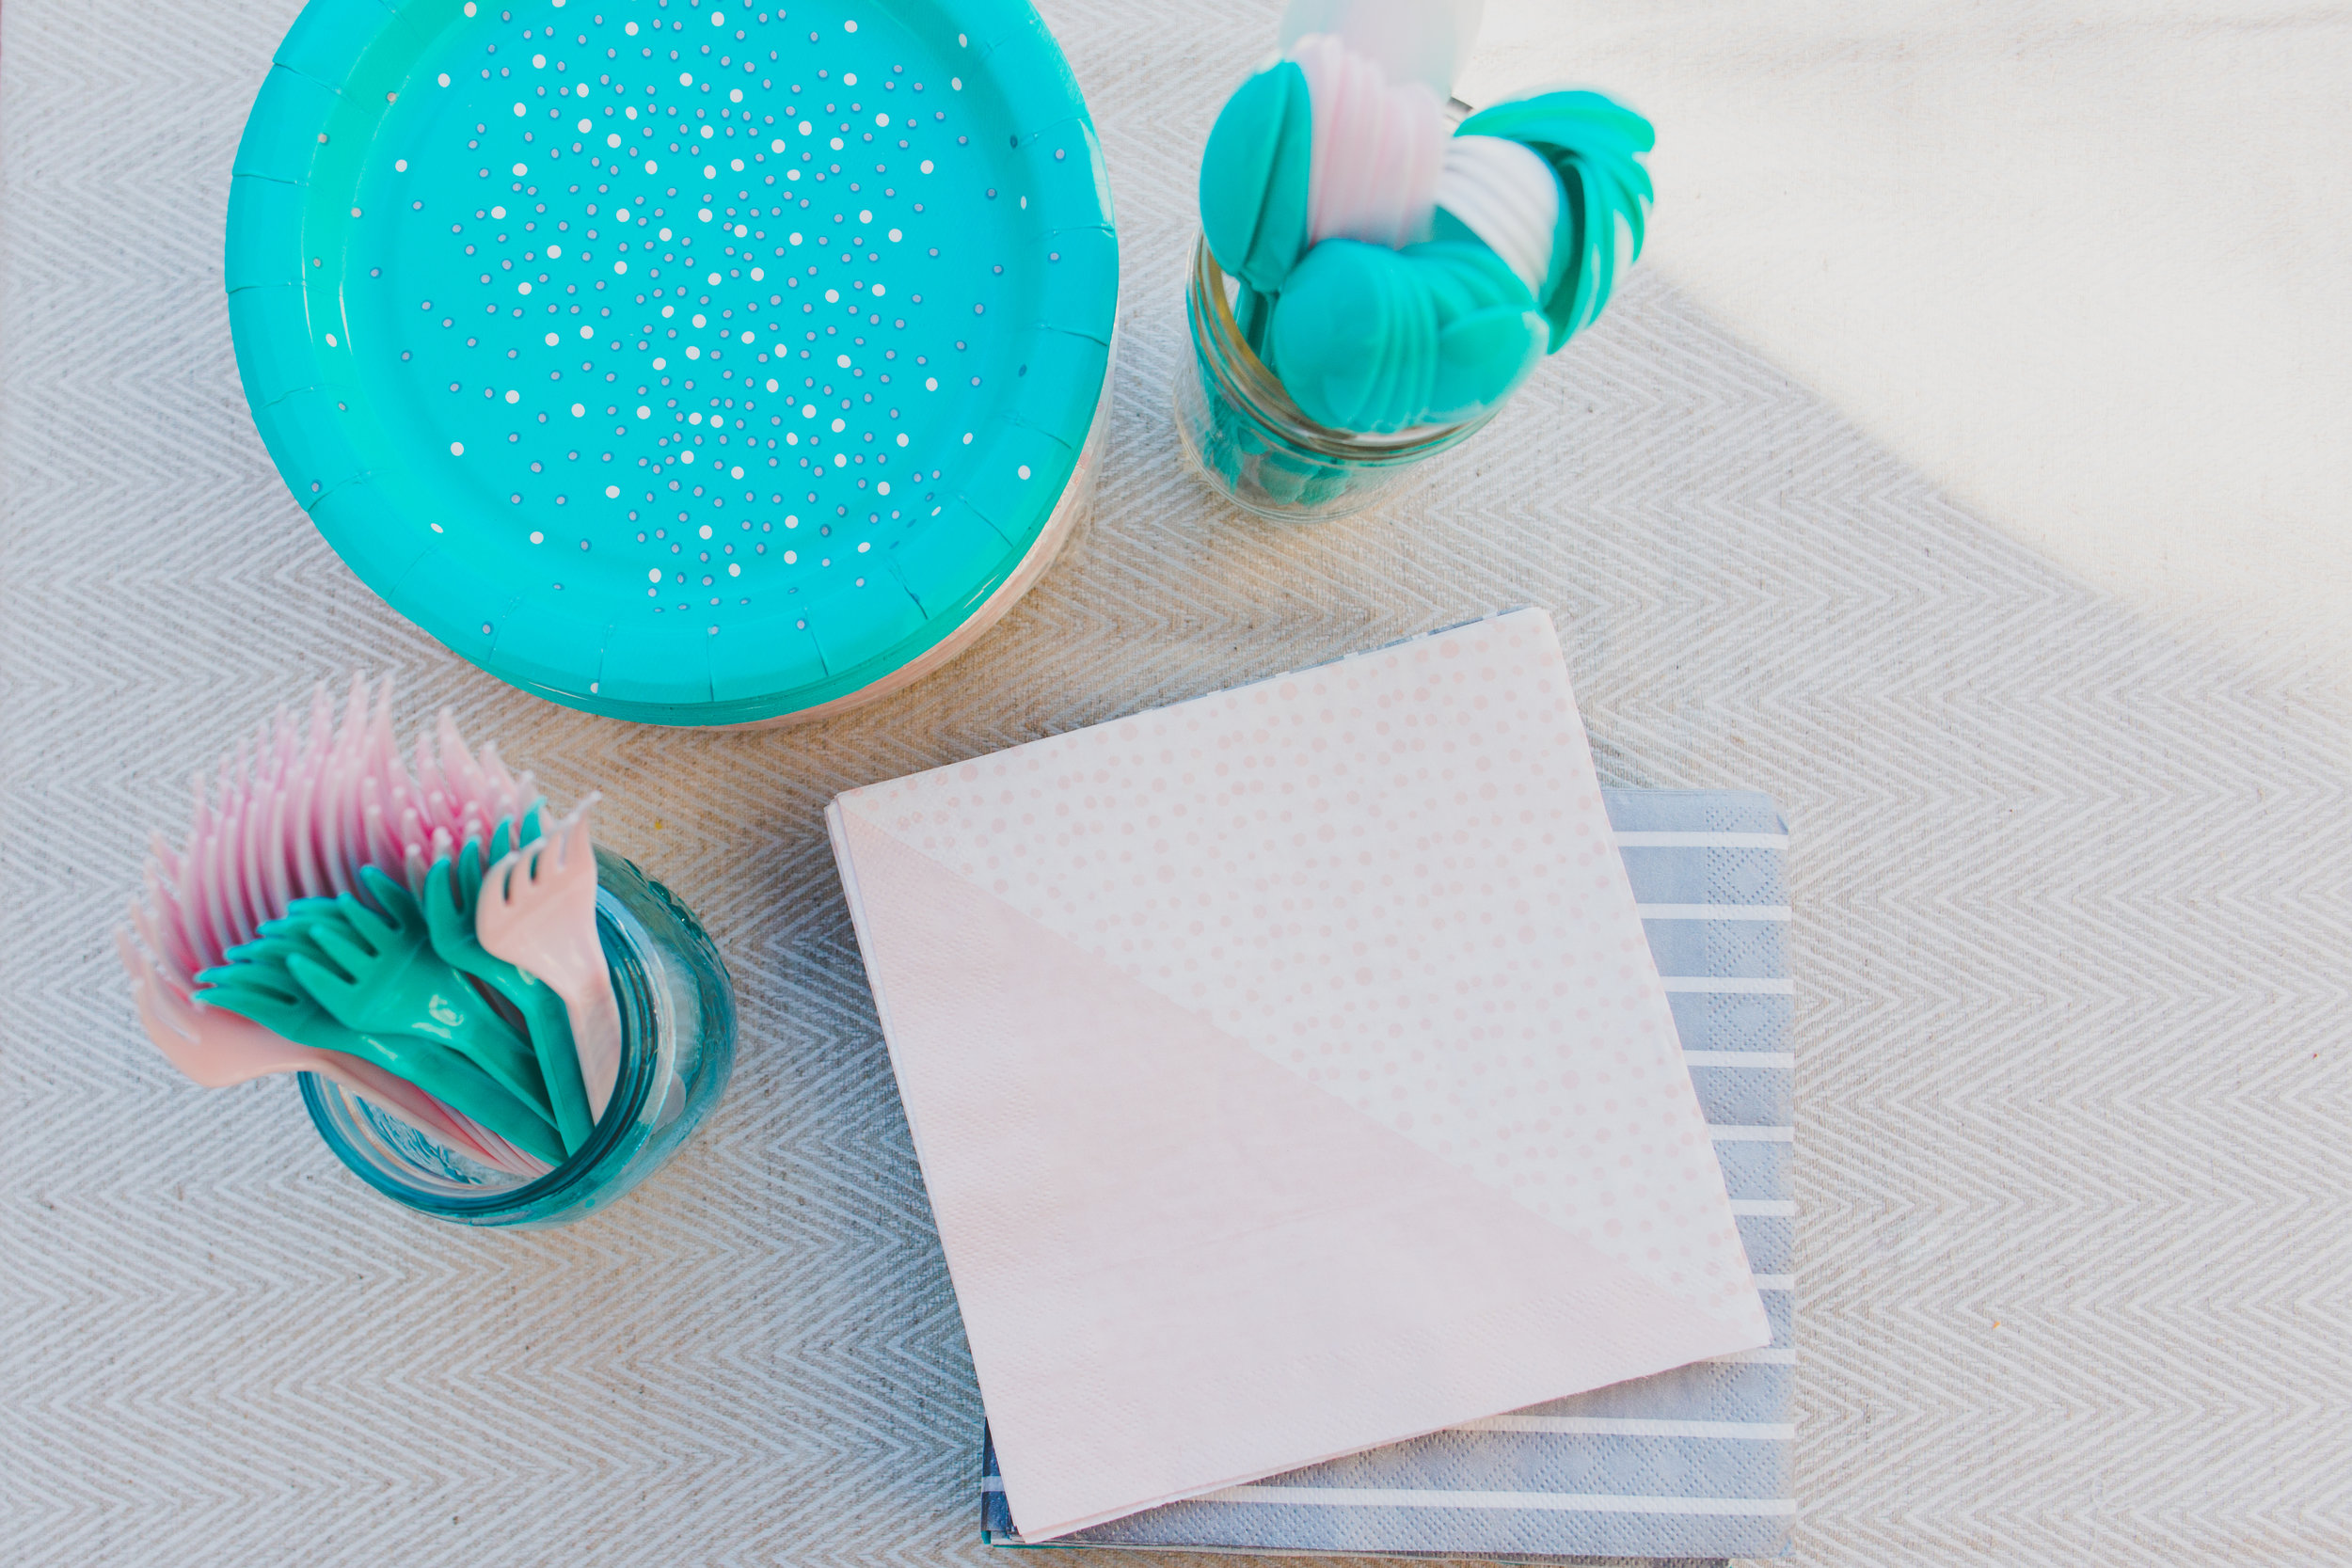 Cheeky Kids Party - First Birthday Party Ideas - A Vintage Chic Pi Day Themed 1st Birthday Party   Ava's First Birthday